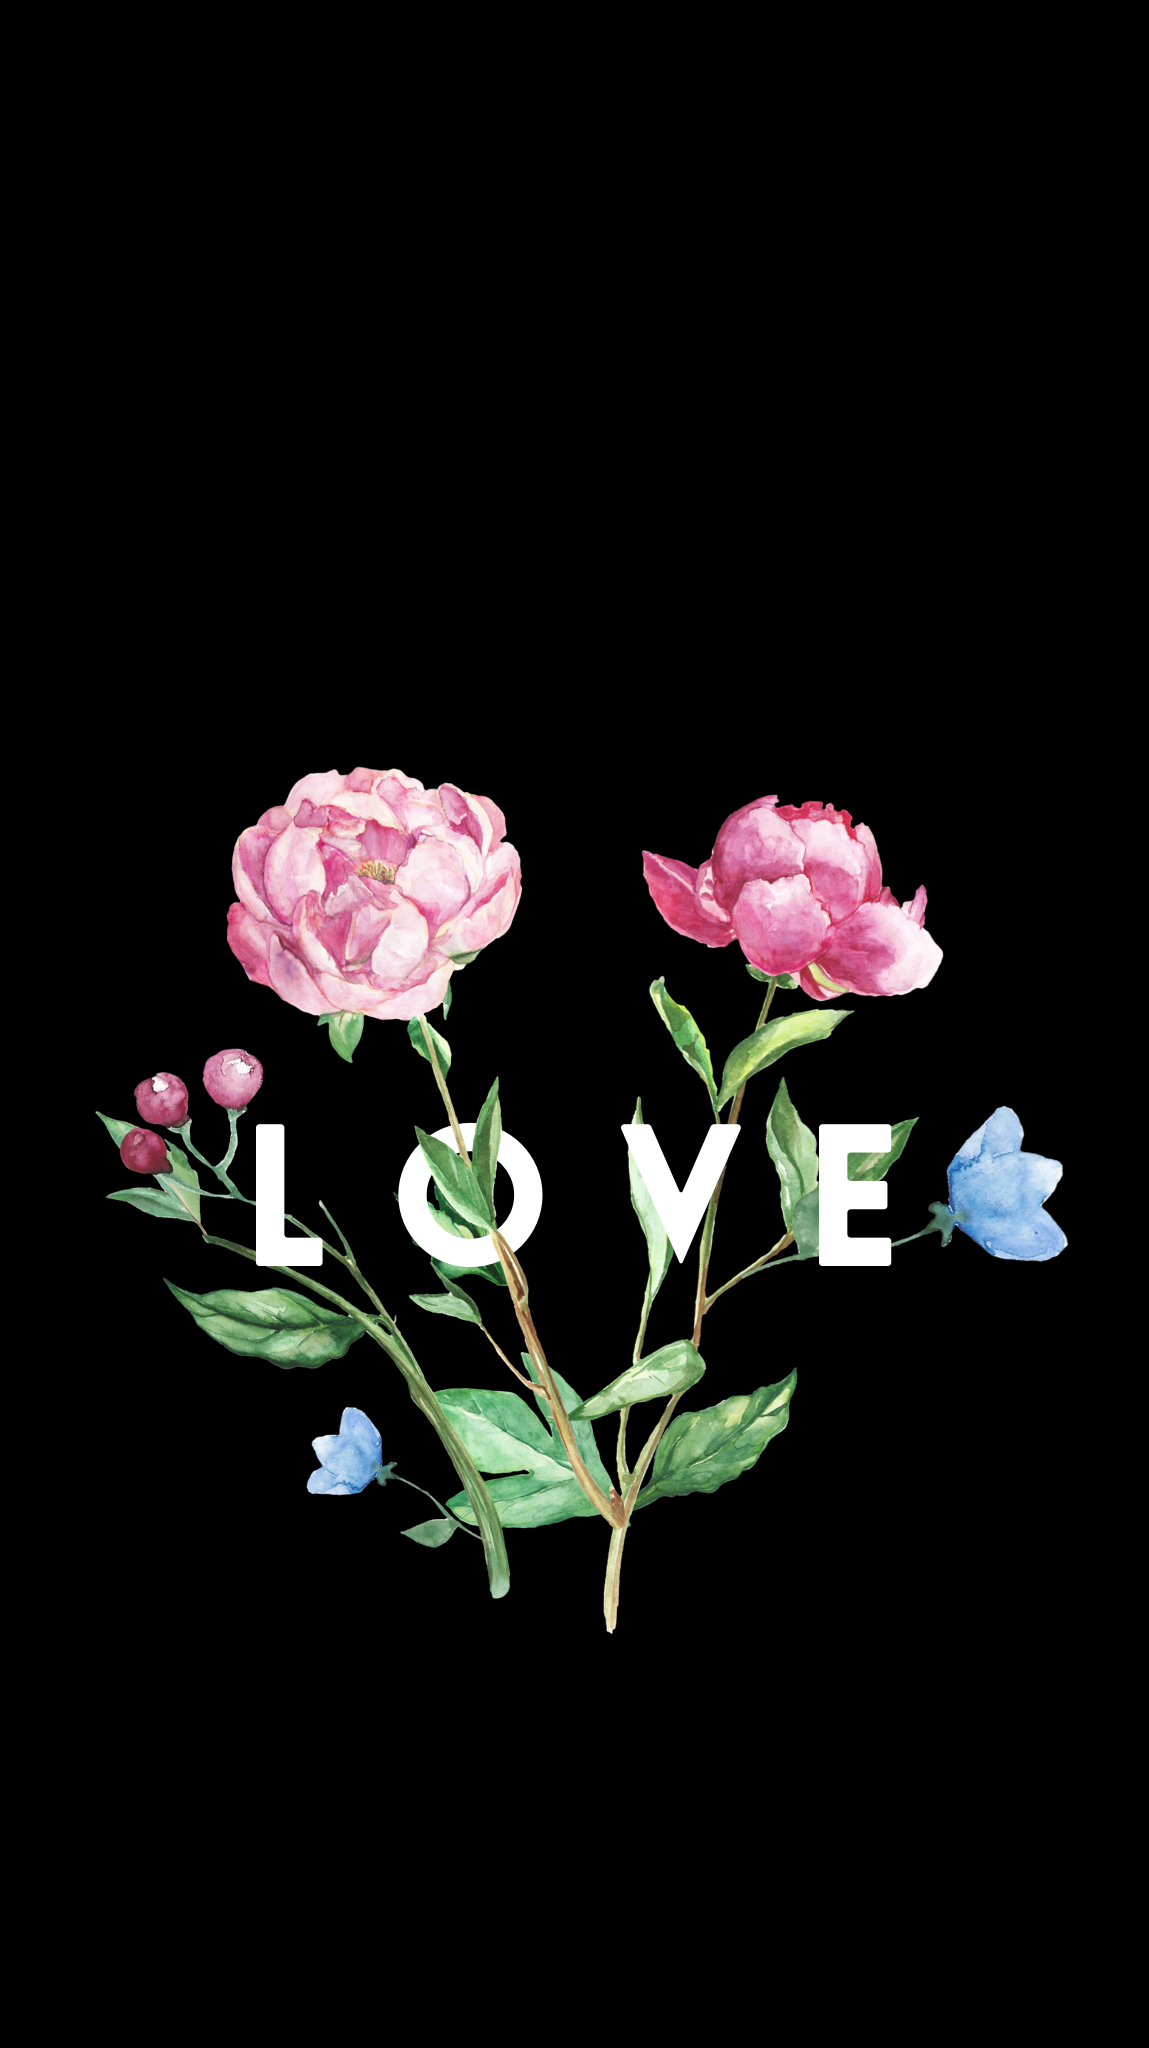 Love In Bloomwallpaper love floral print deco